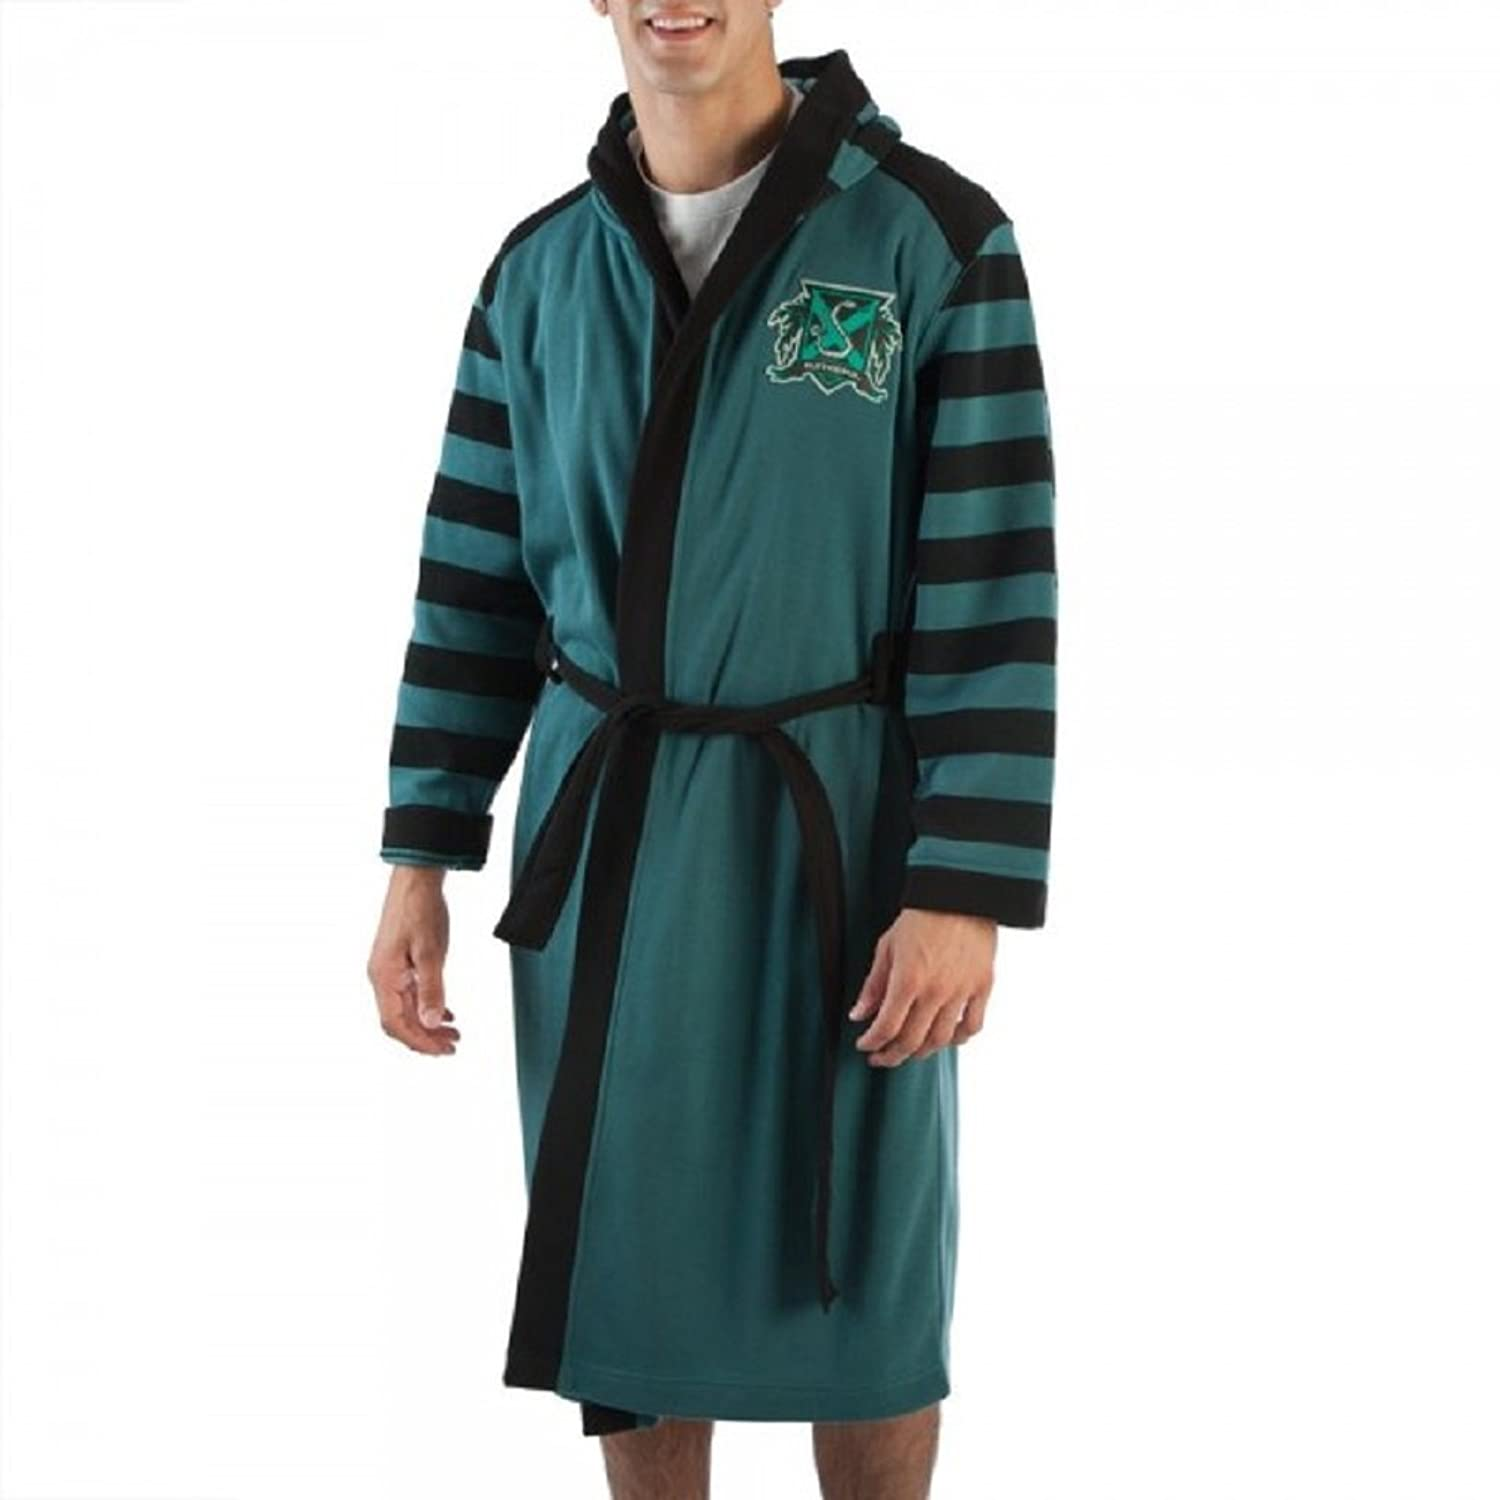 Amazon.com: Slytherin House Bath Robe from Harry Potter Adult Sizes ...